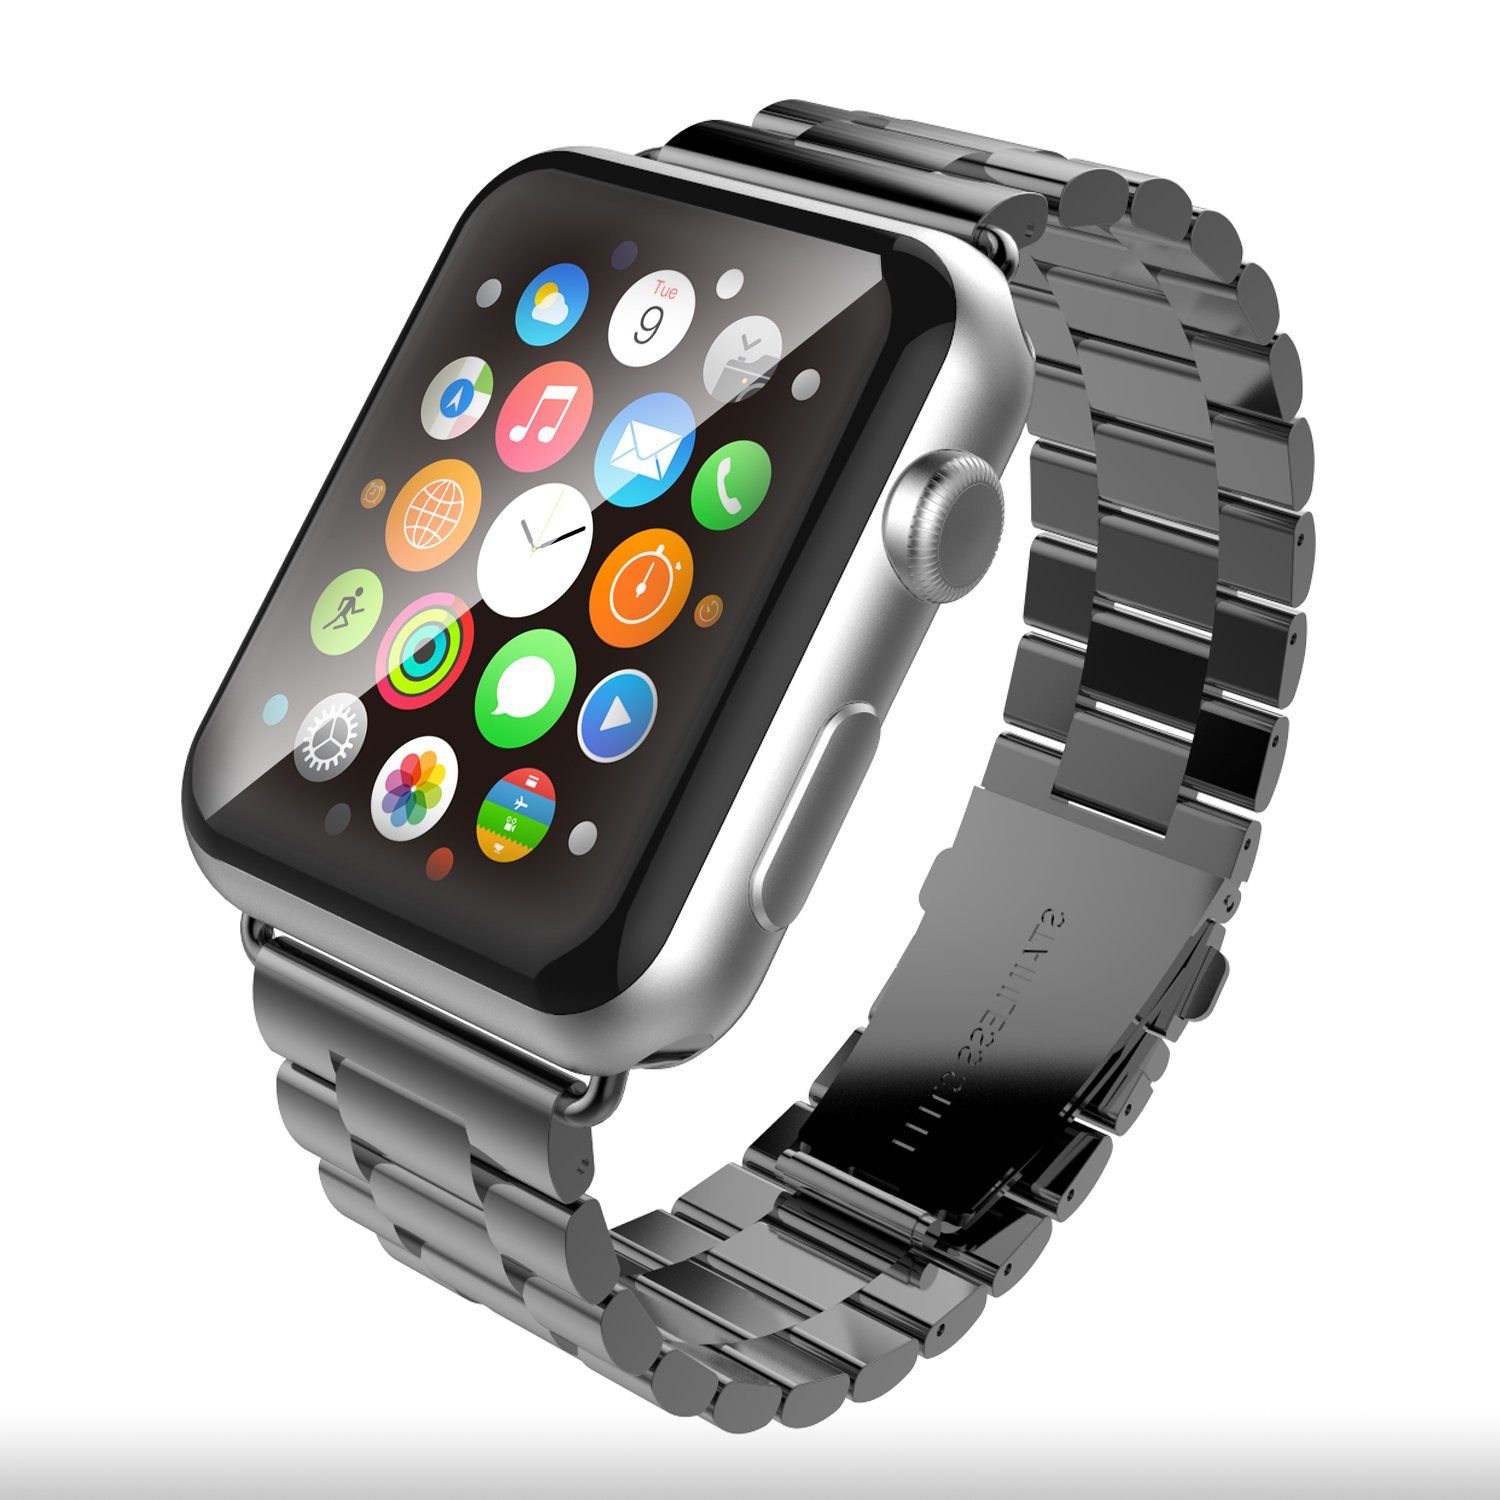 wristband phone watches watch and i date wont model magnetic iphone specs release need apple new